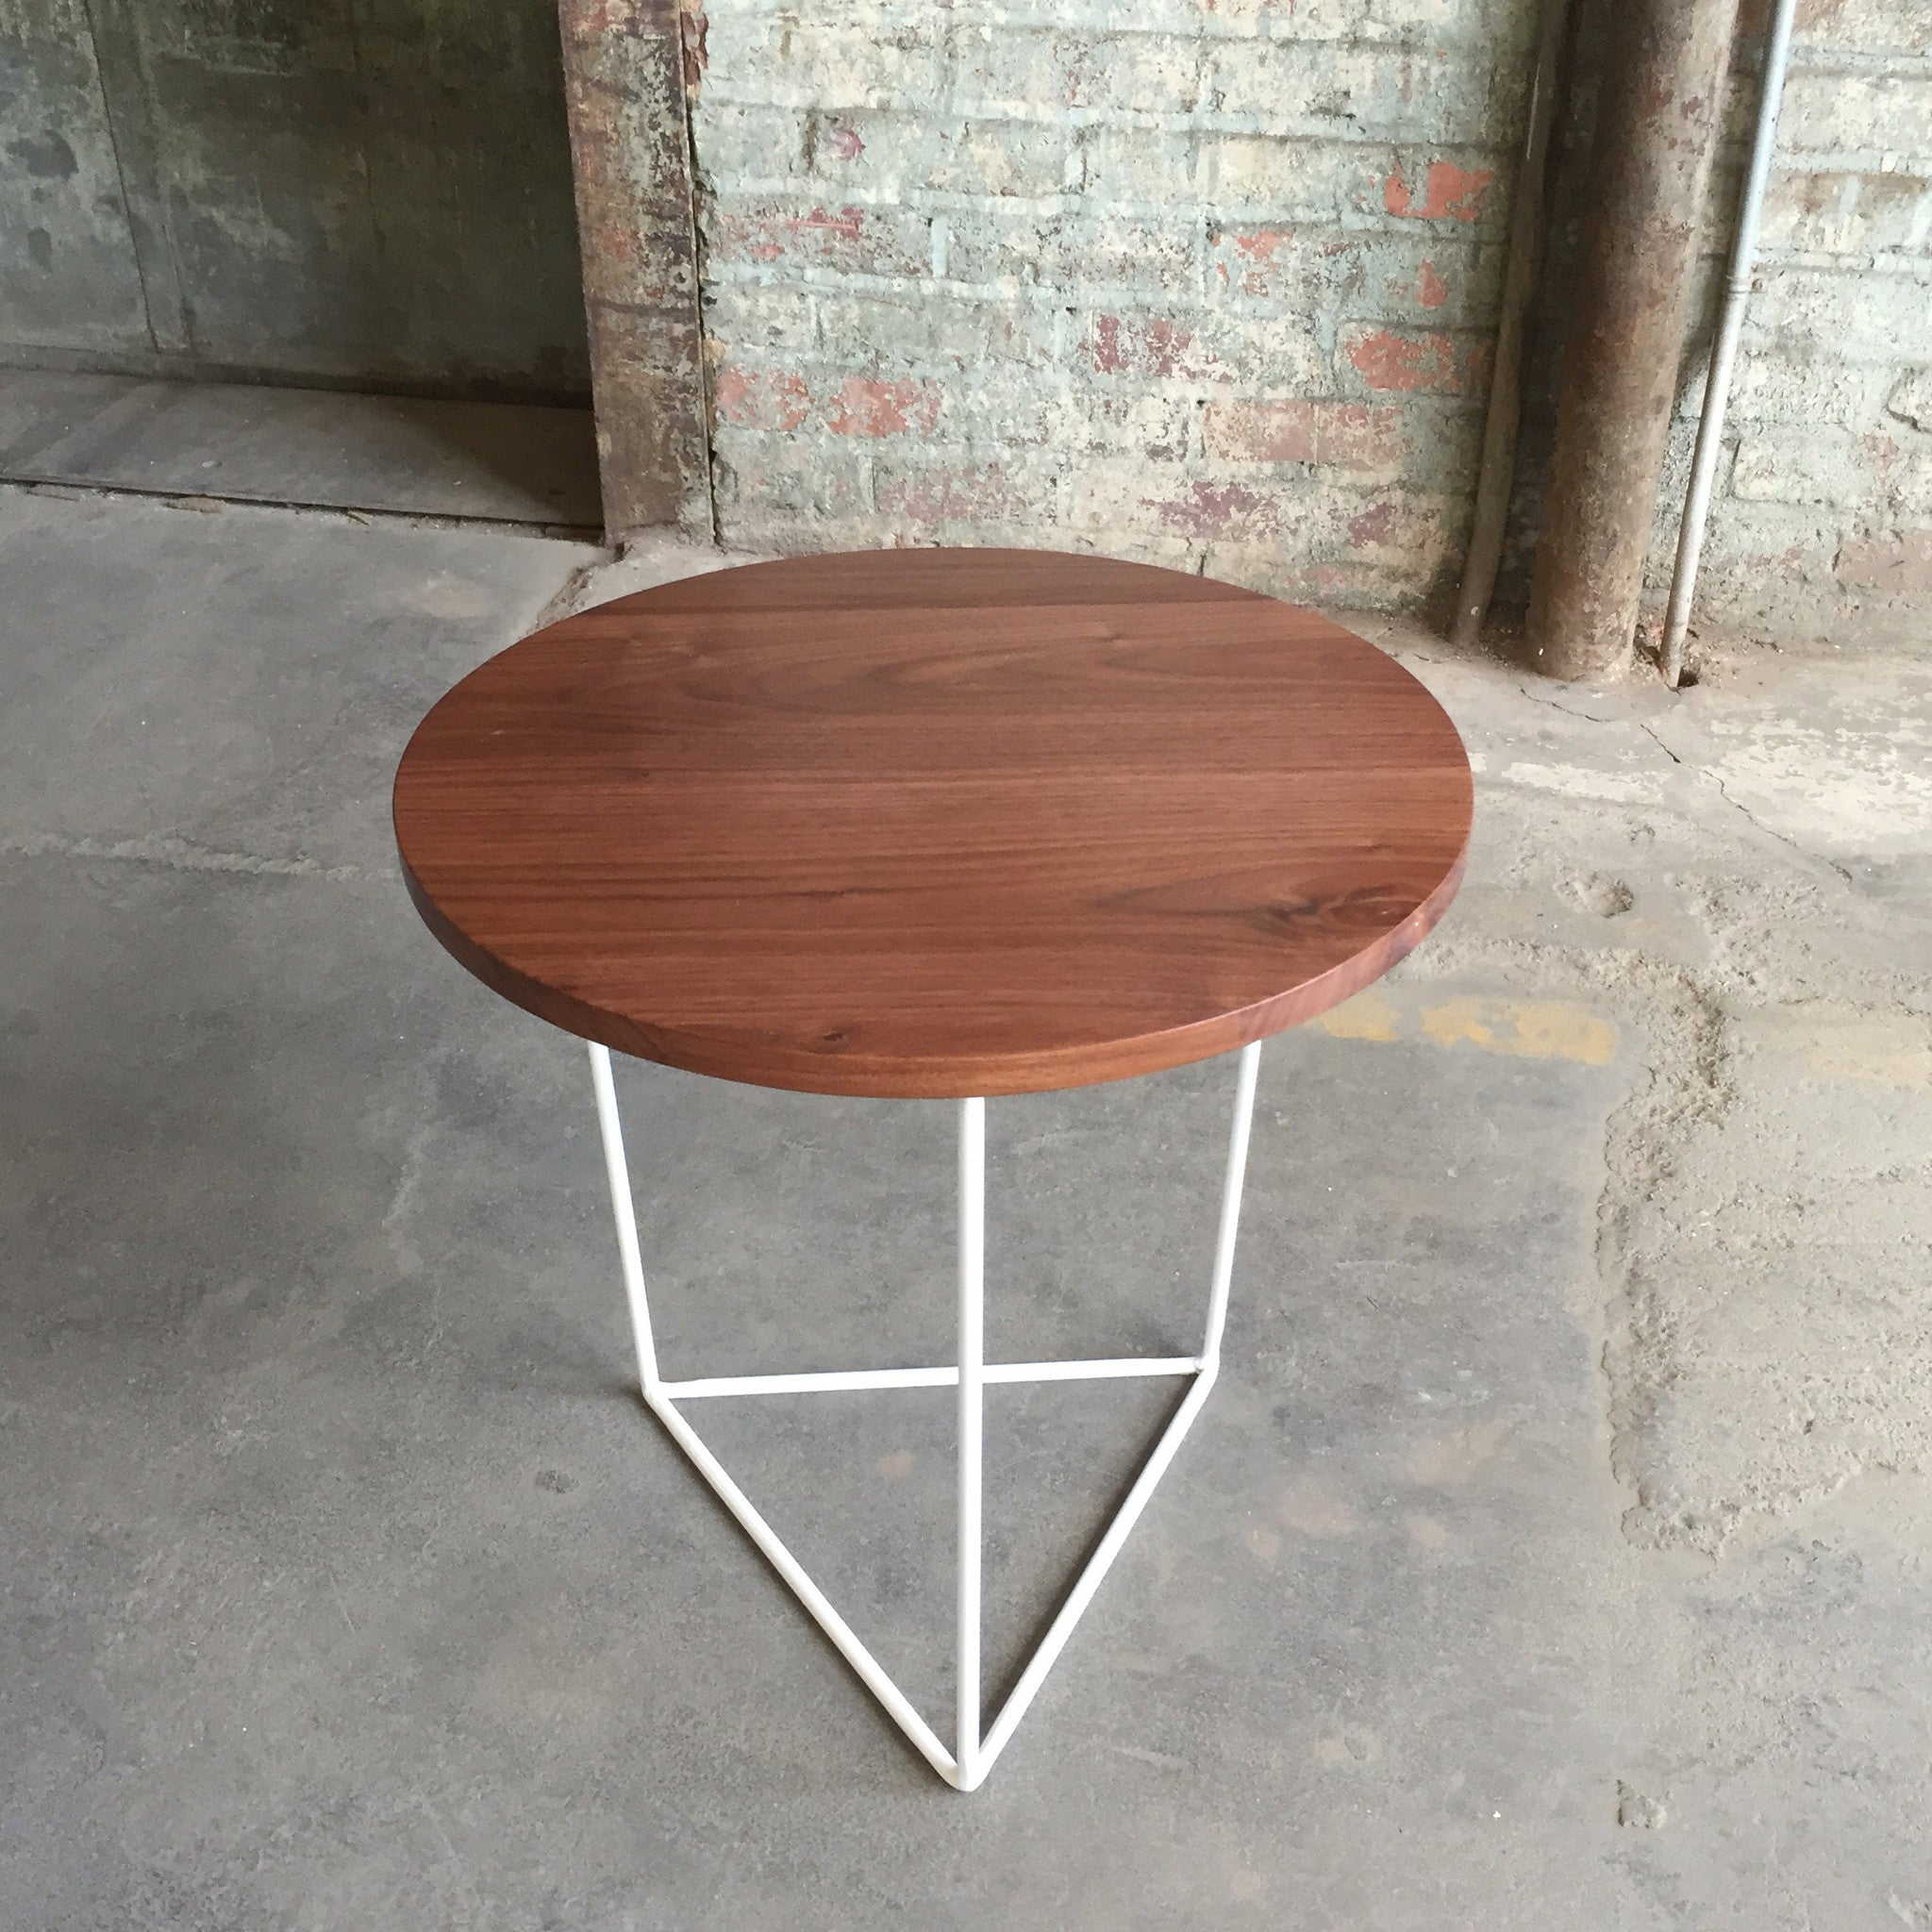 Modern Side Table with Round Walnut Top and Triangle Steel Base